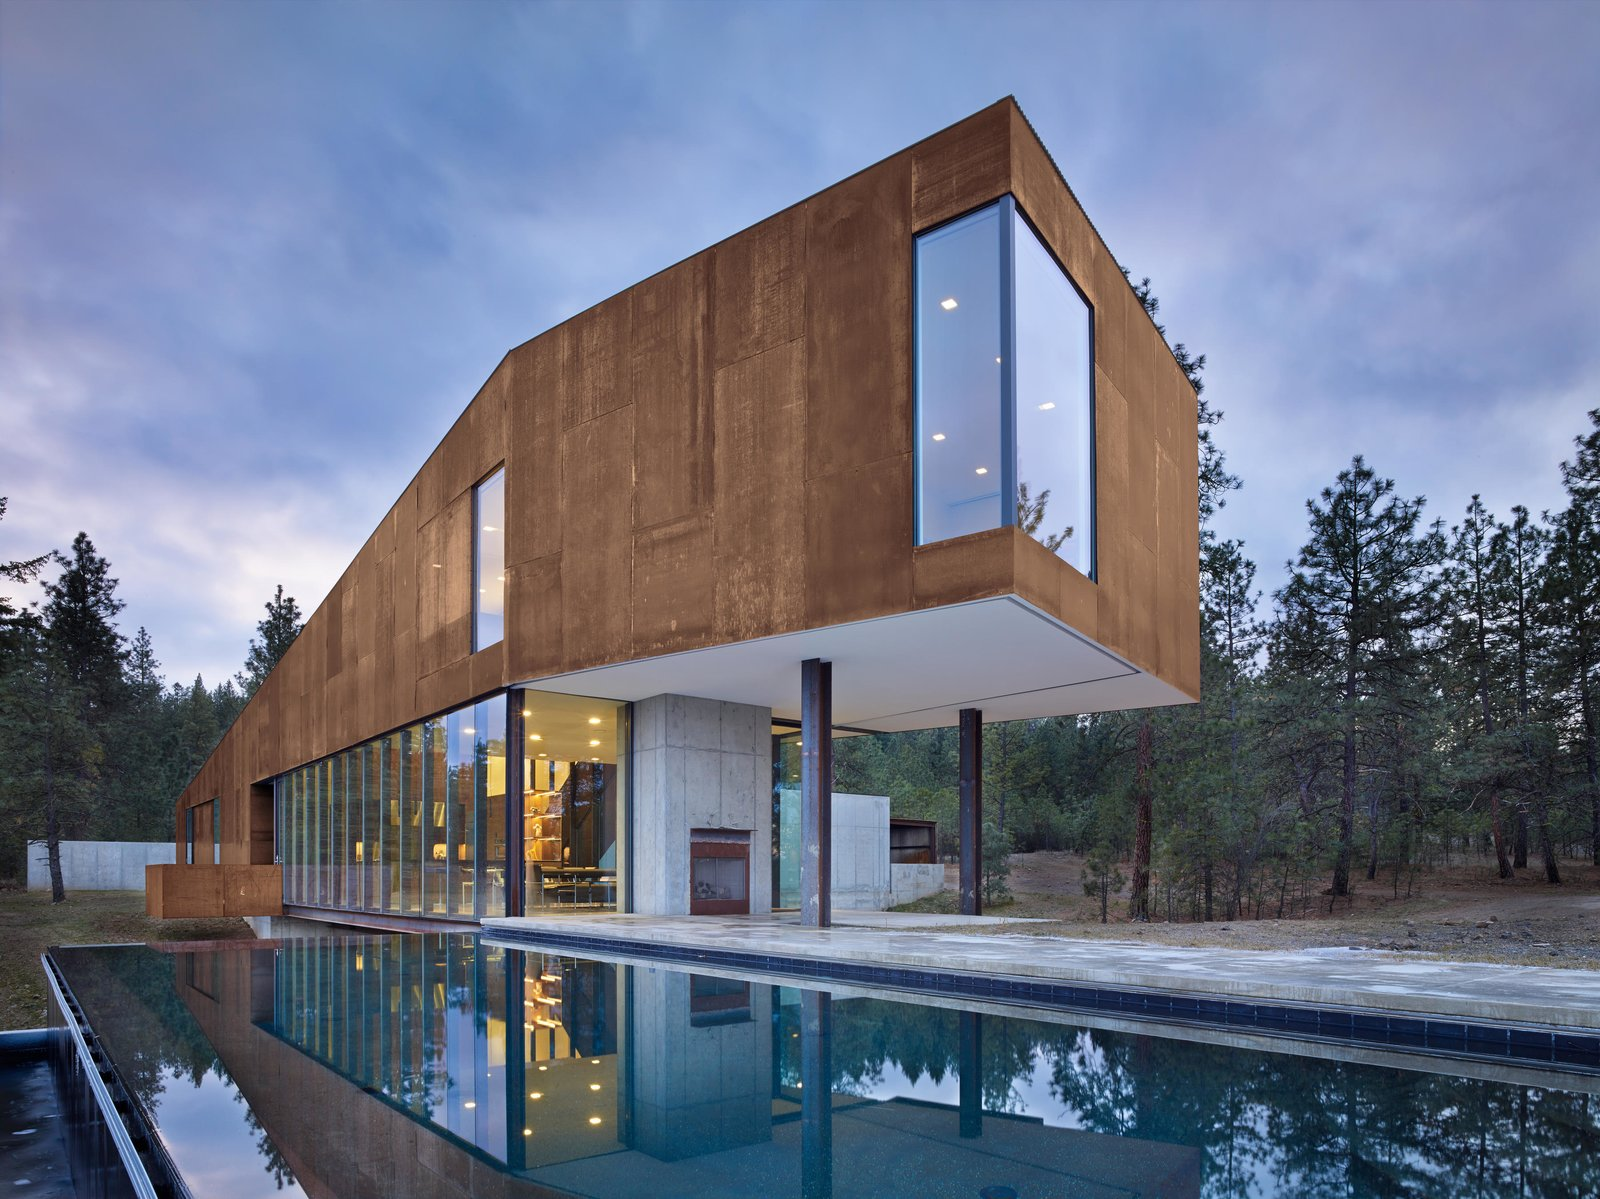 Rimrock | Olson Kundig Tagged: House, Metal Roof Material, Metal Siding Material, Outdoor, Infinity Pools, Tubs, Shower, Concrete Patio, Porch, Deck, Large Patio, Porch, Deck, Back Yard, and Side Yard.  Rimrock by Olson Kundig